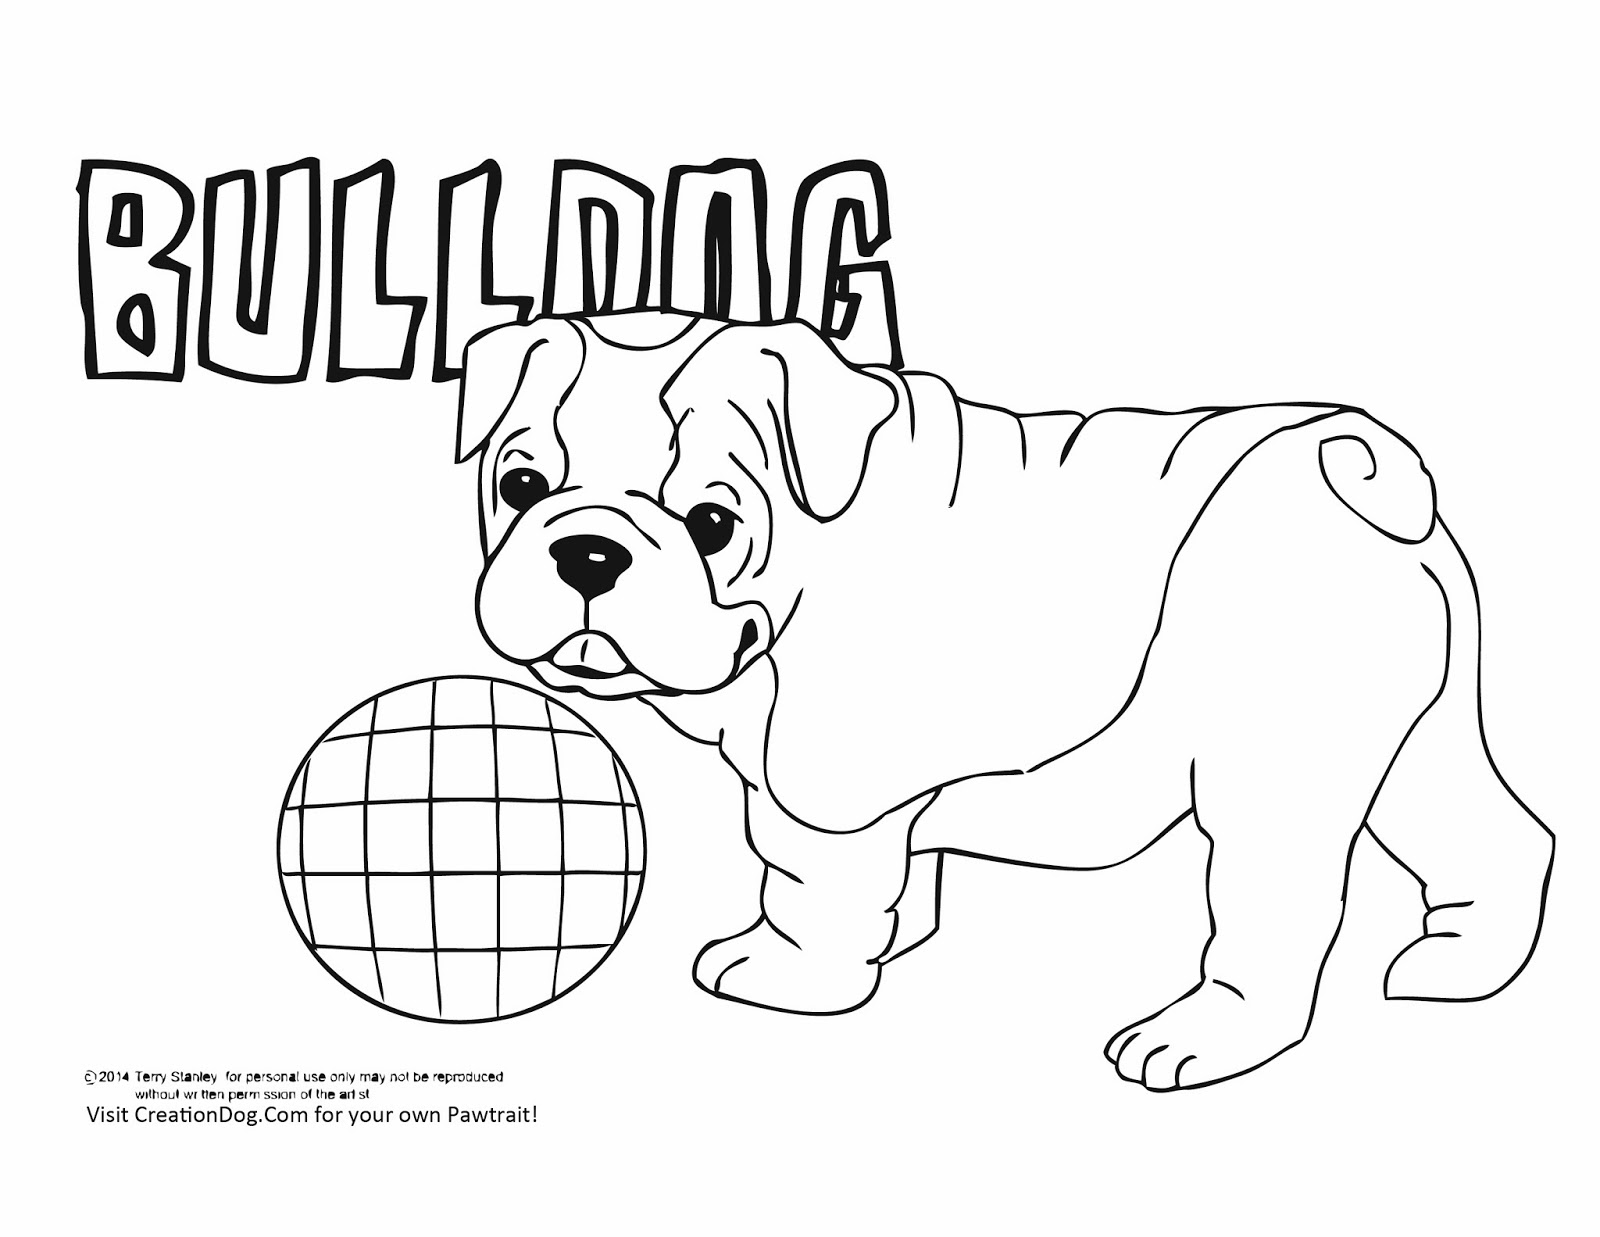 Bulldog coloring pages